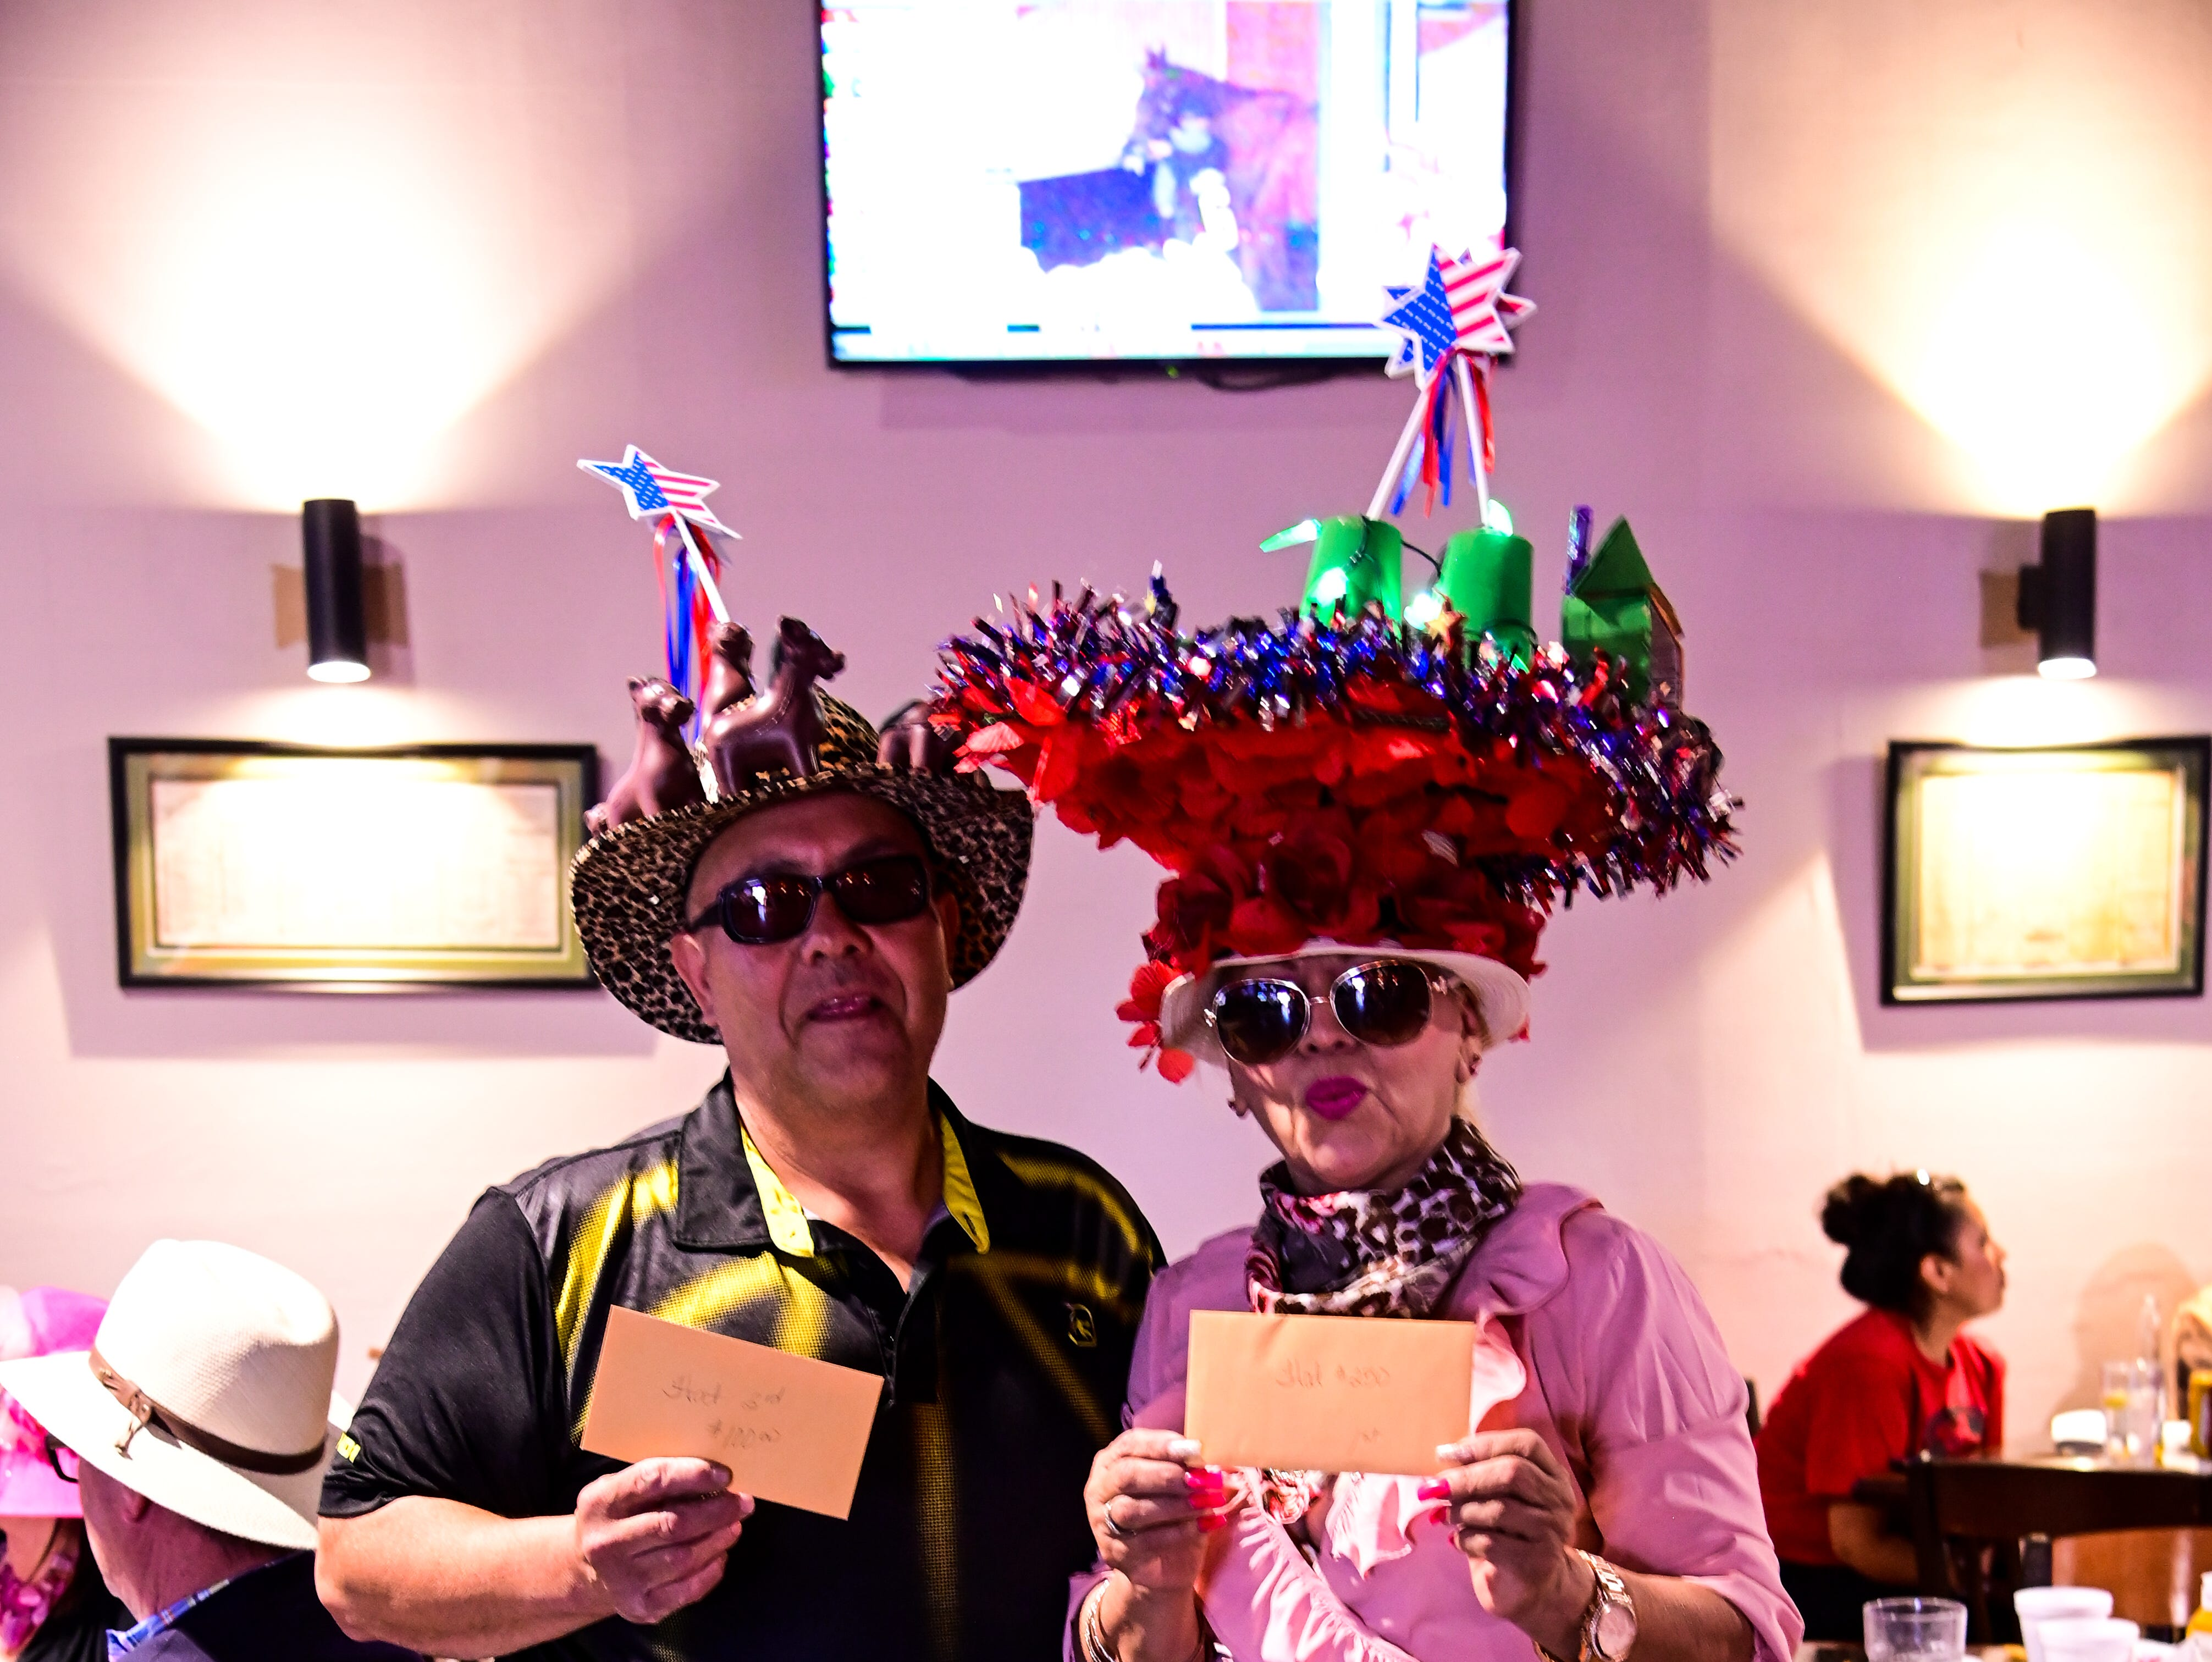 Ruidoso Downs Race Track and Casino hosted Kentucky Derby Hat Day May 4.